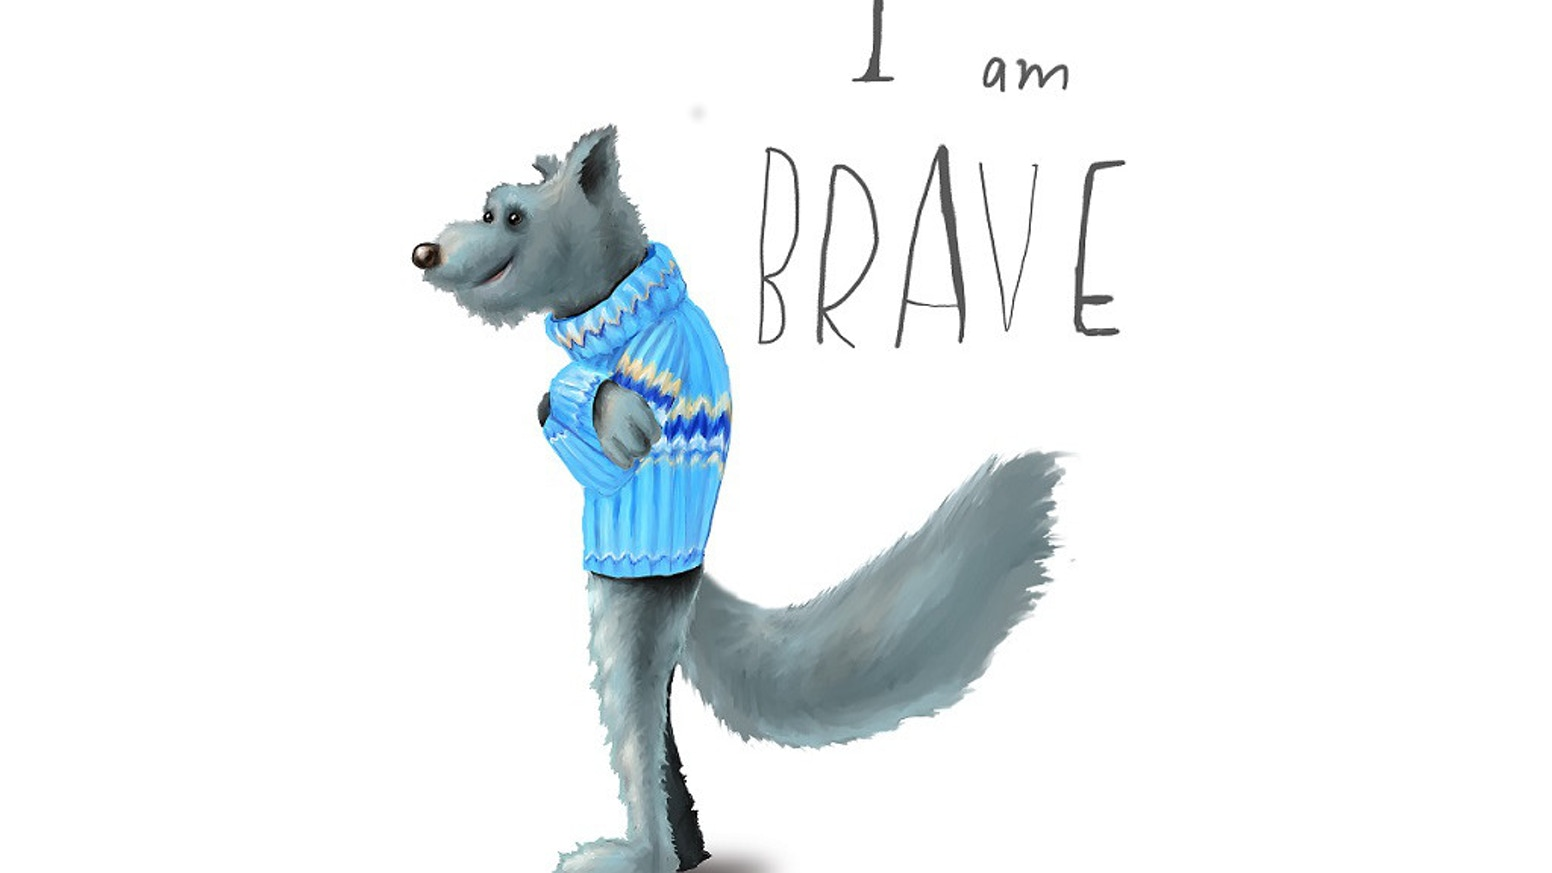 Thank you for helping us to raise funds to build a basic application to give children access to the 'Feel Brave' characters and their stories and poems!